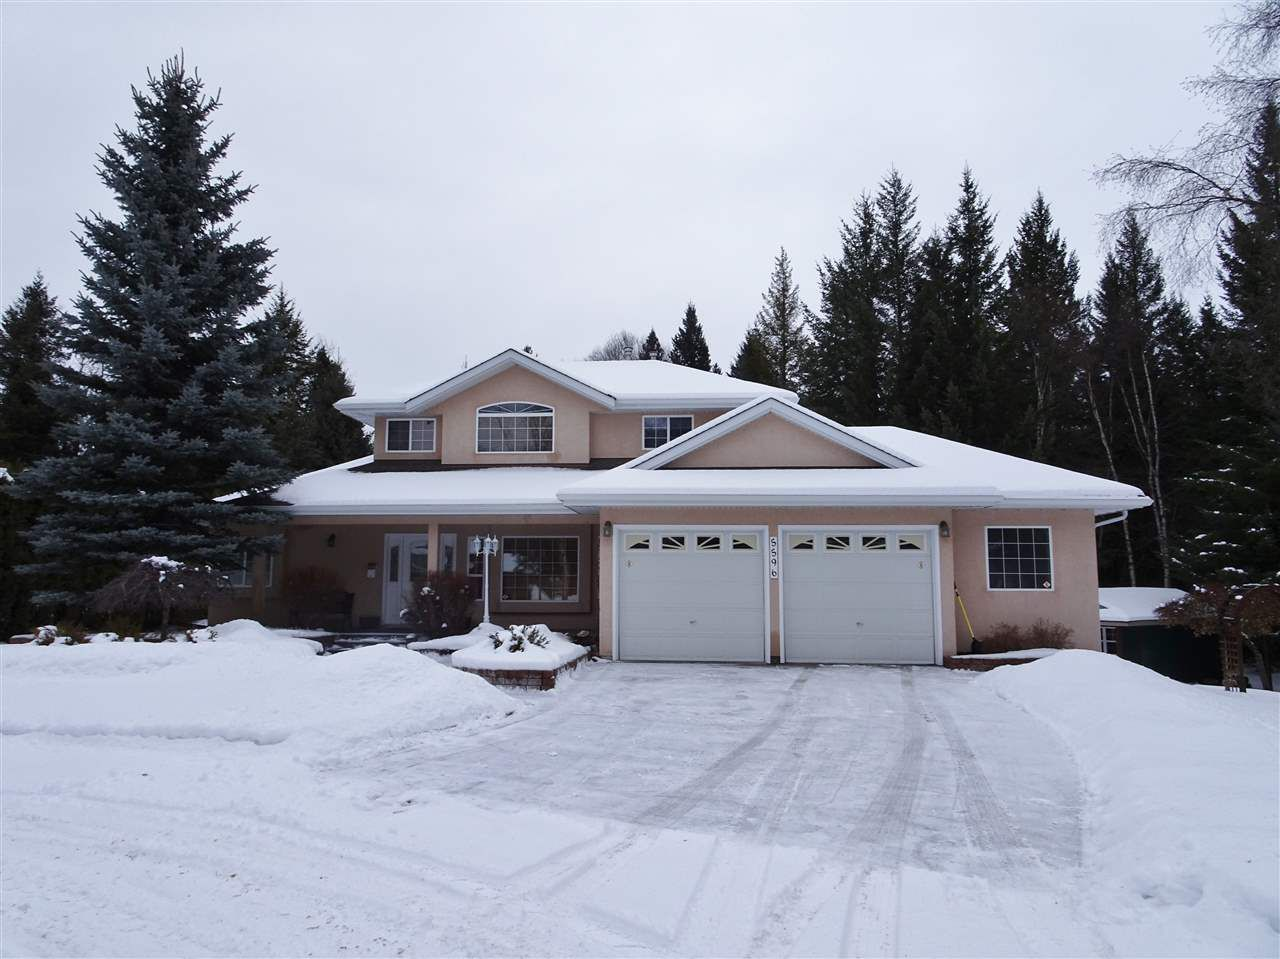 """Main Photo: 5596 MCGUCKIN Place in Prince George: Upper College House for sale in """"UPPER COLLEGE HEIGHTS"""" (PG City South (Zone 74))  : MLS®# R2230929"""